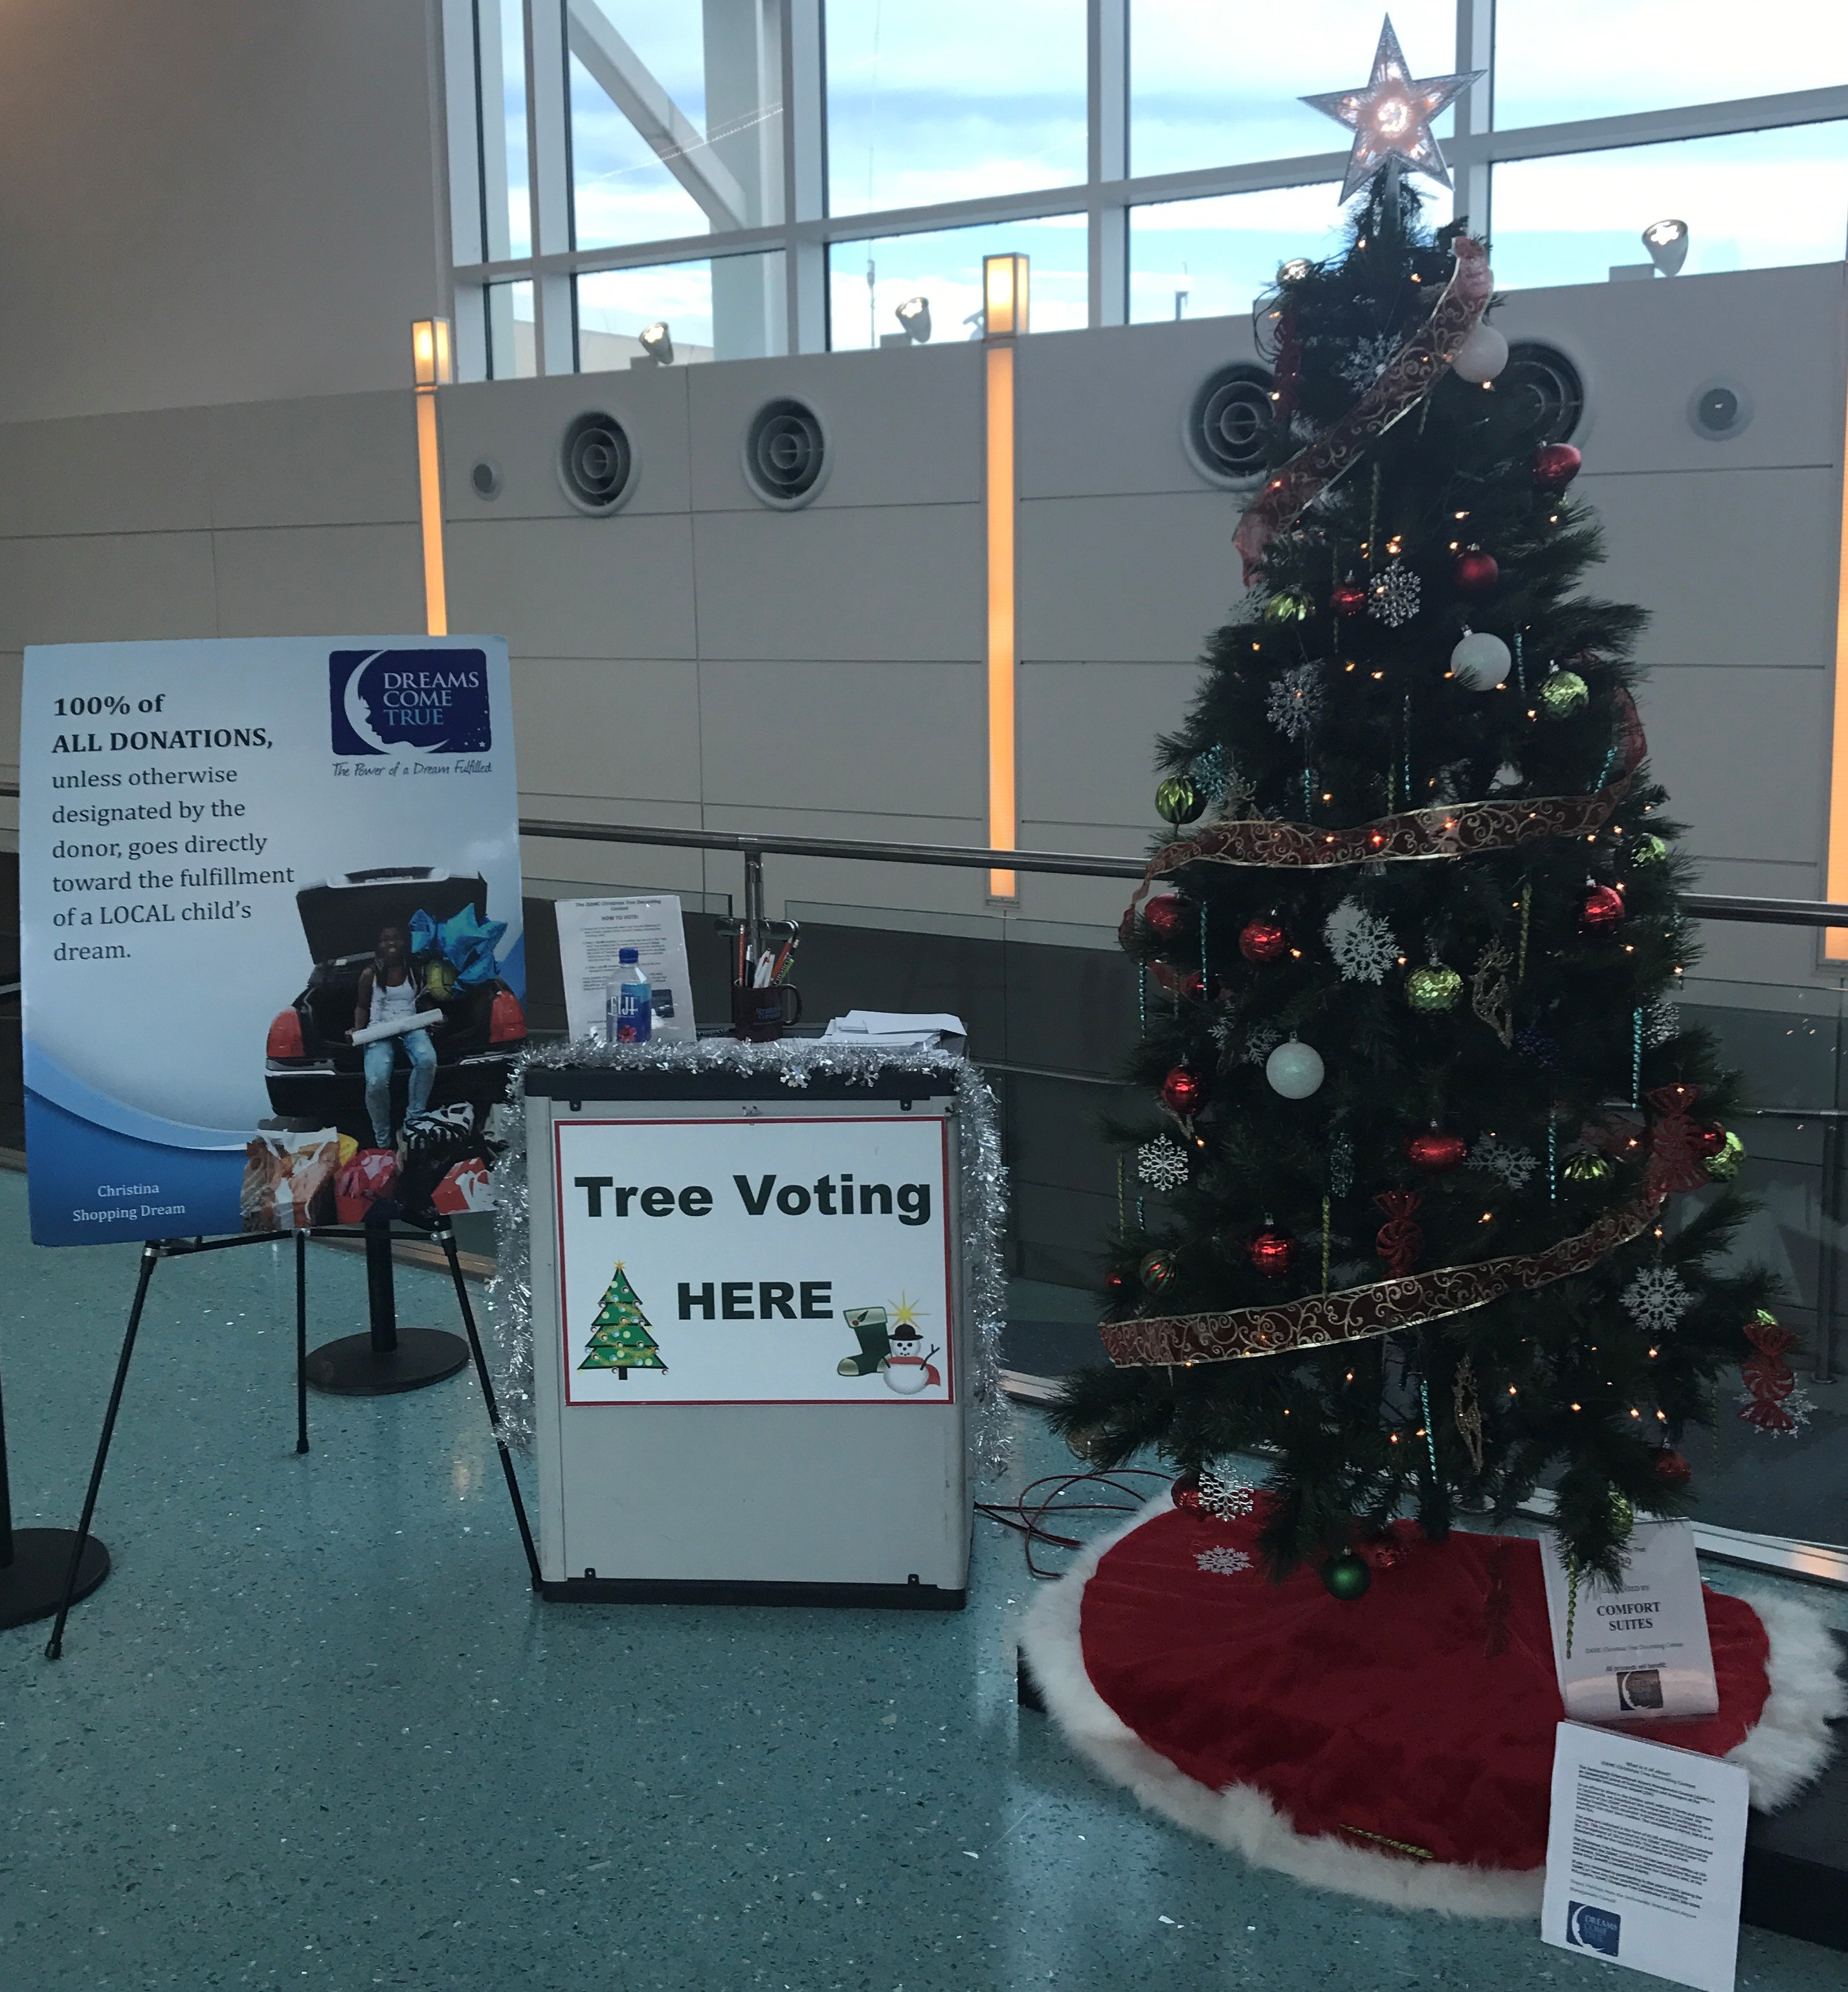 A christmas decoration that has been donated to you is a - Tree Voting Here